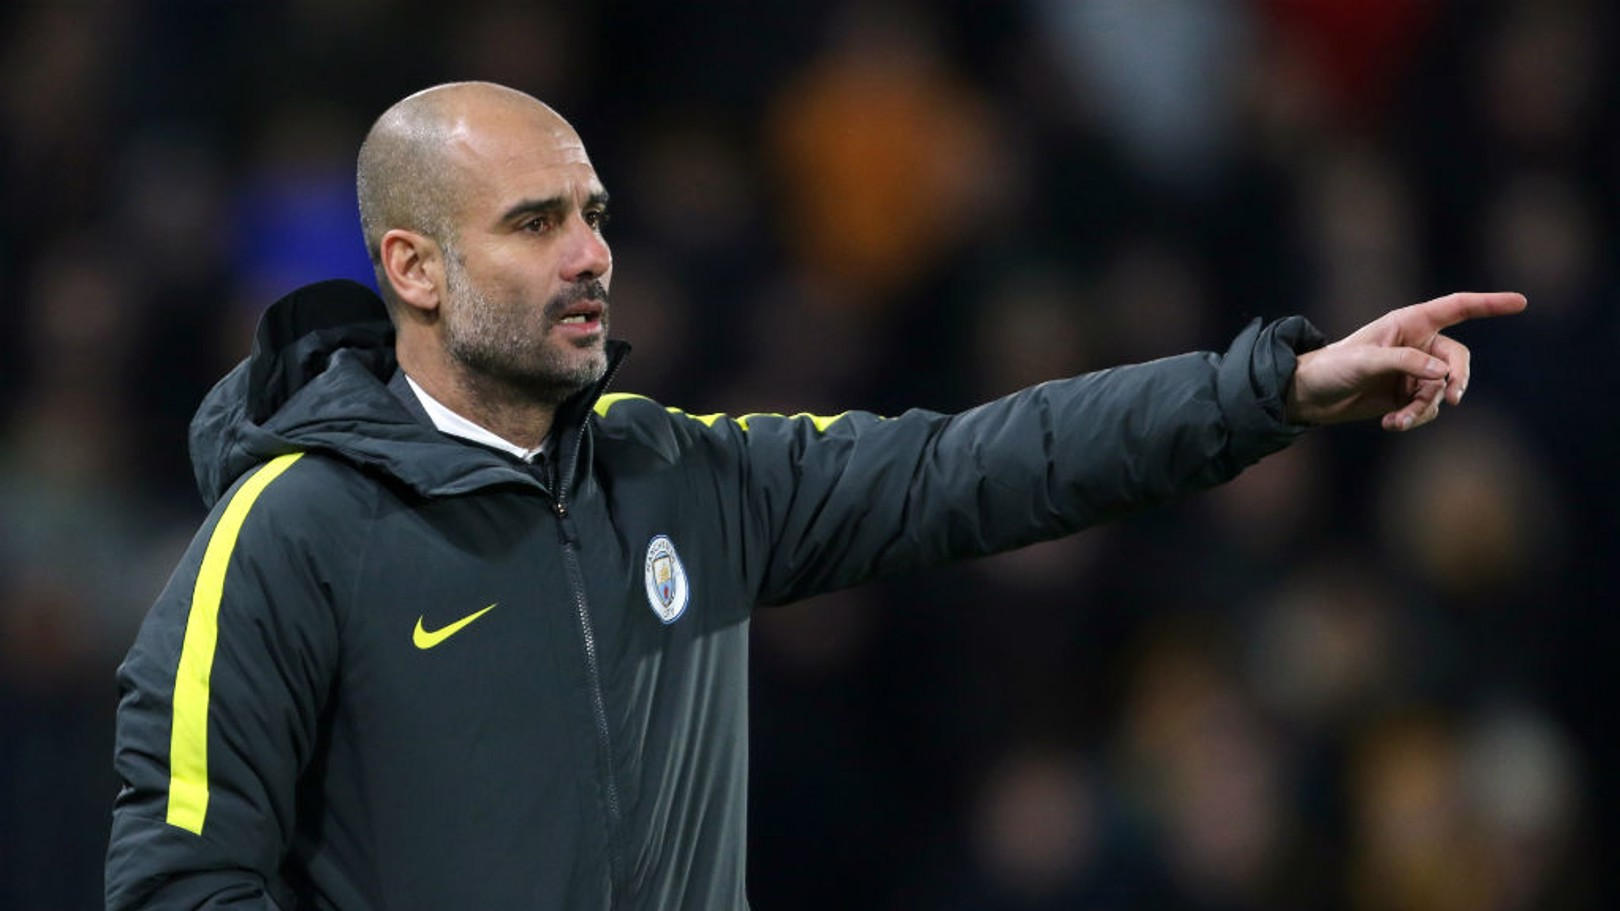 PEP: Burnley is our only focus at the moment